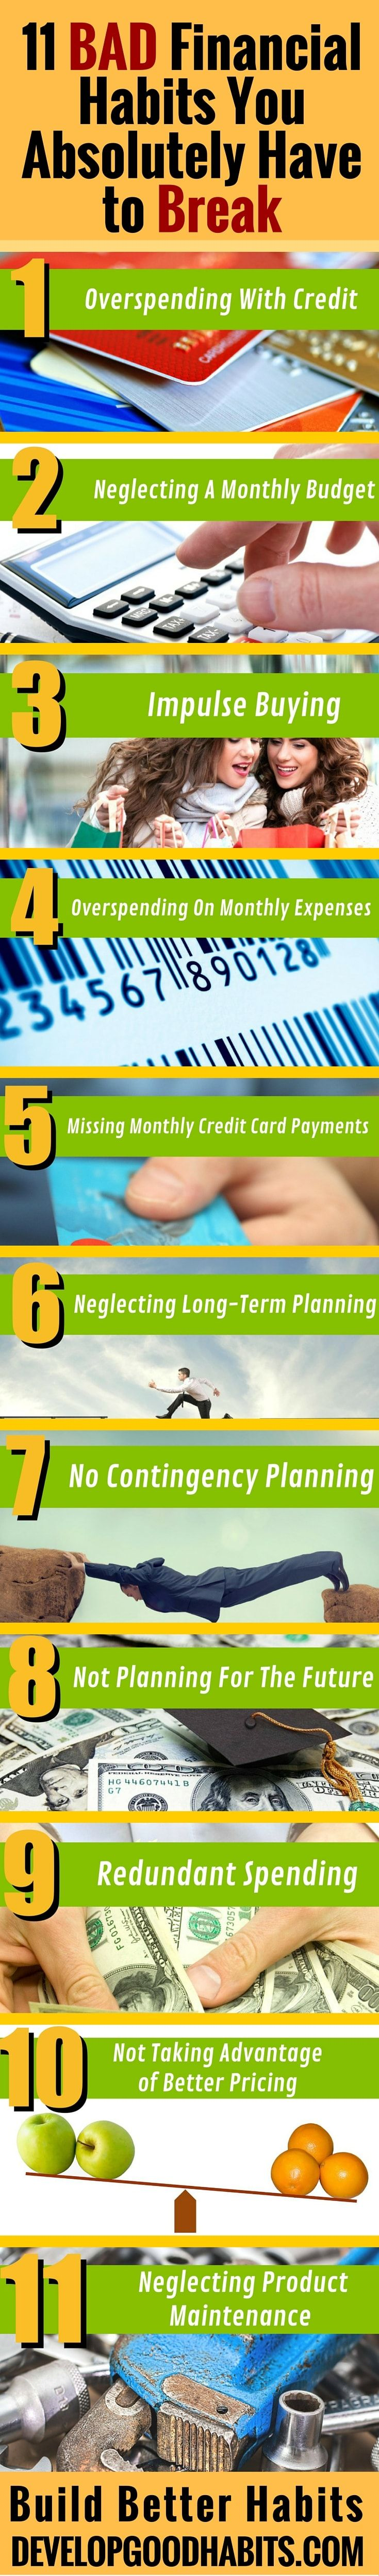 Money lender payday loan picture 1